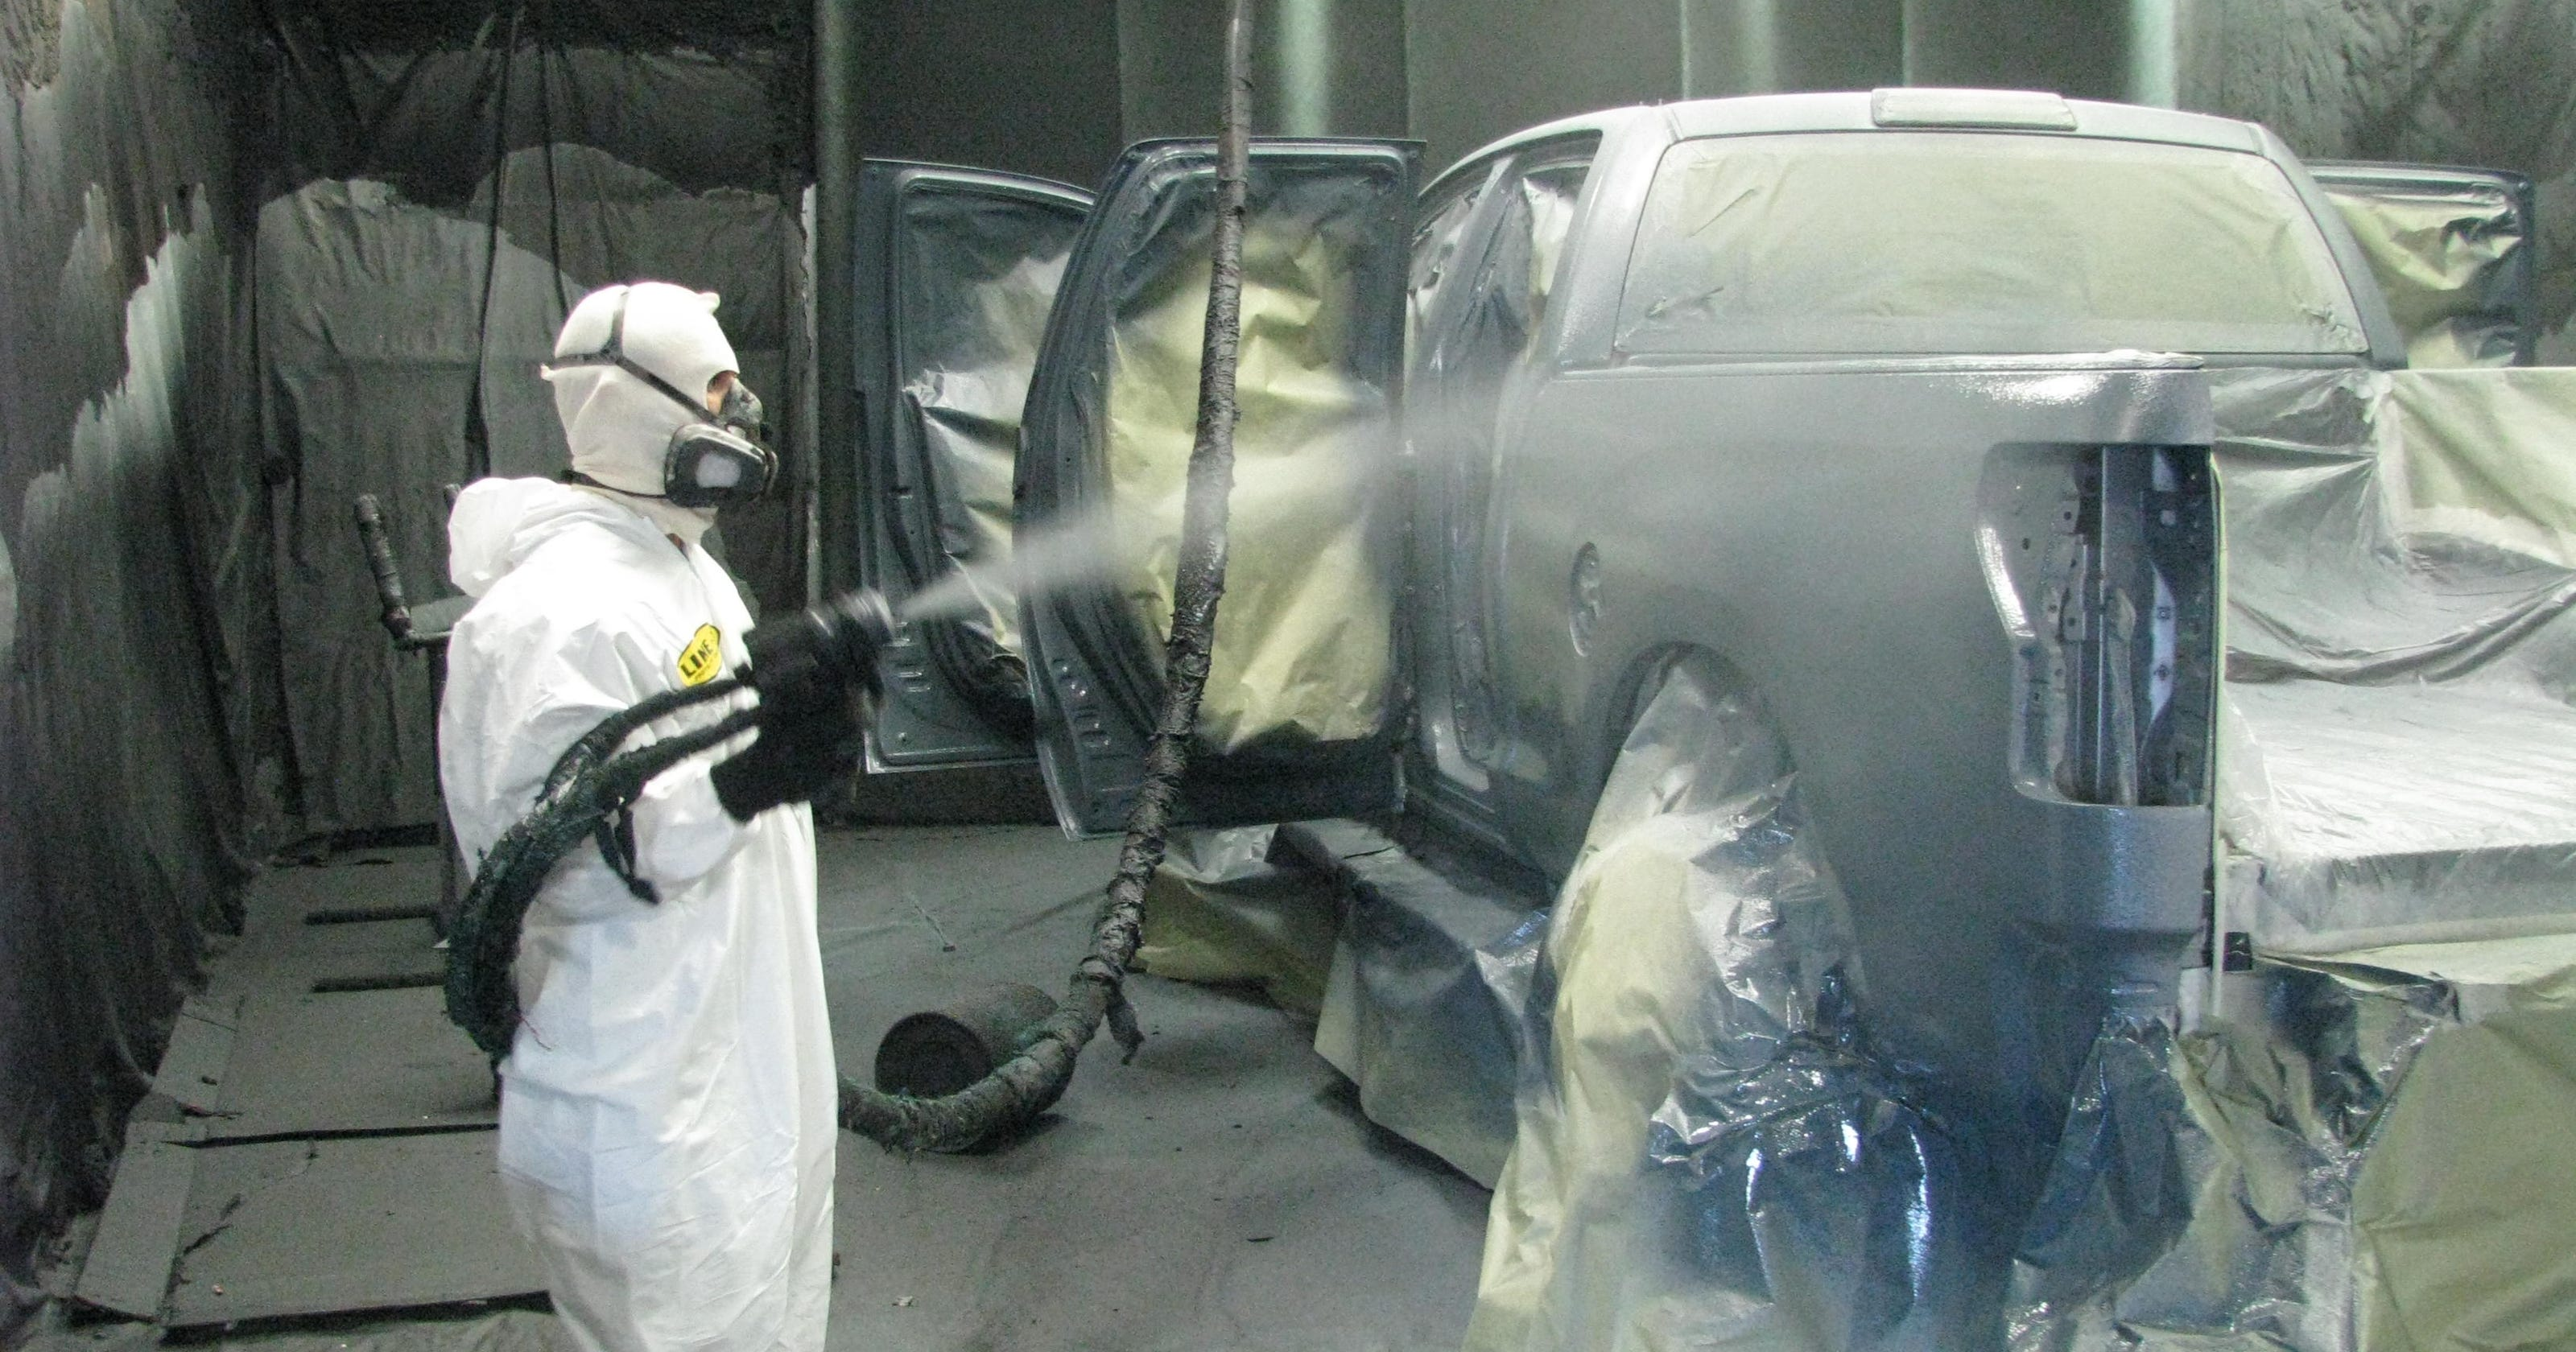 Spray In Bedliner Cost F150 >> Pickup owners spray the whole truck with bedliner plastic